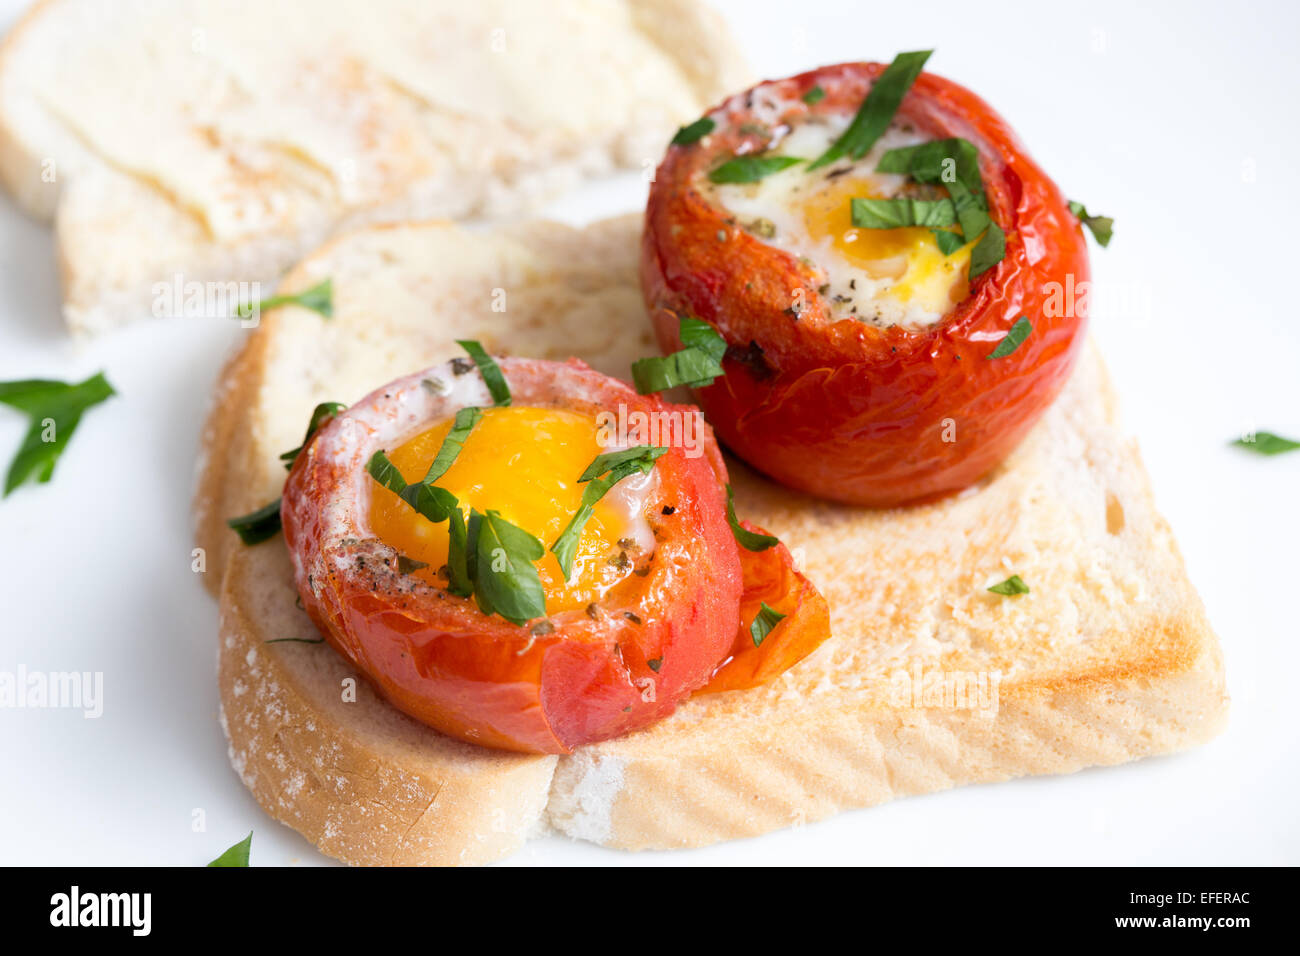 Baked, de-seeded tomatoes filled with an egg and finished in the oven, served on toast with a parsley garnish. This - Stock Image